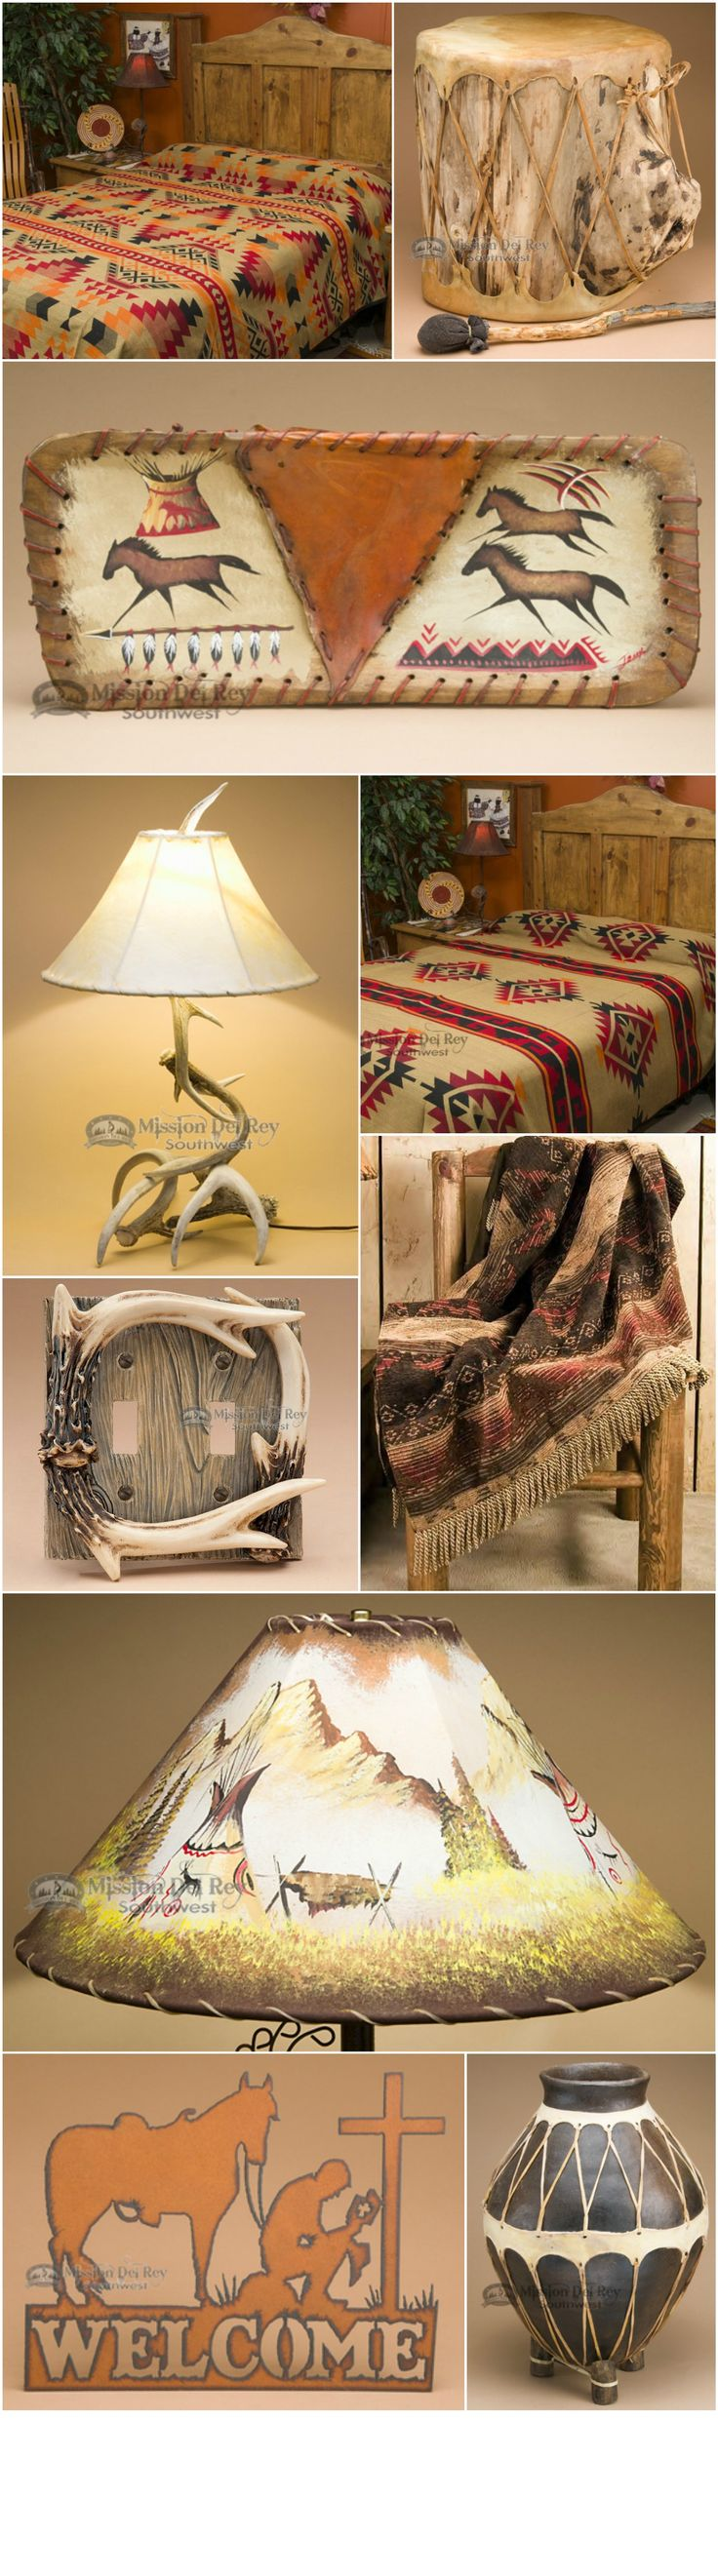 Find fantastic rustic, western and southwest decor for decorating your rustic style home. Choose from popular western bedding, southwestern lamps, leather lamp shades, Native American handcrafts and more. Visit us at http://www.missiondelrey.com/